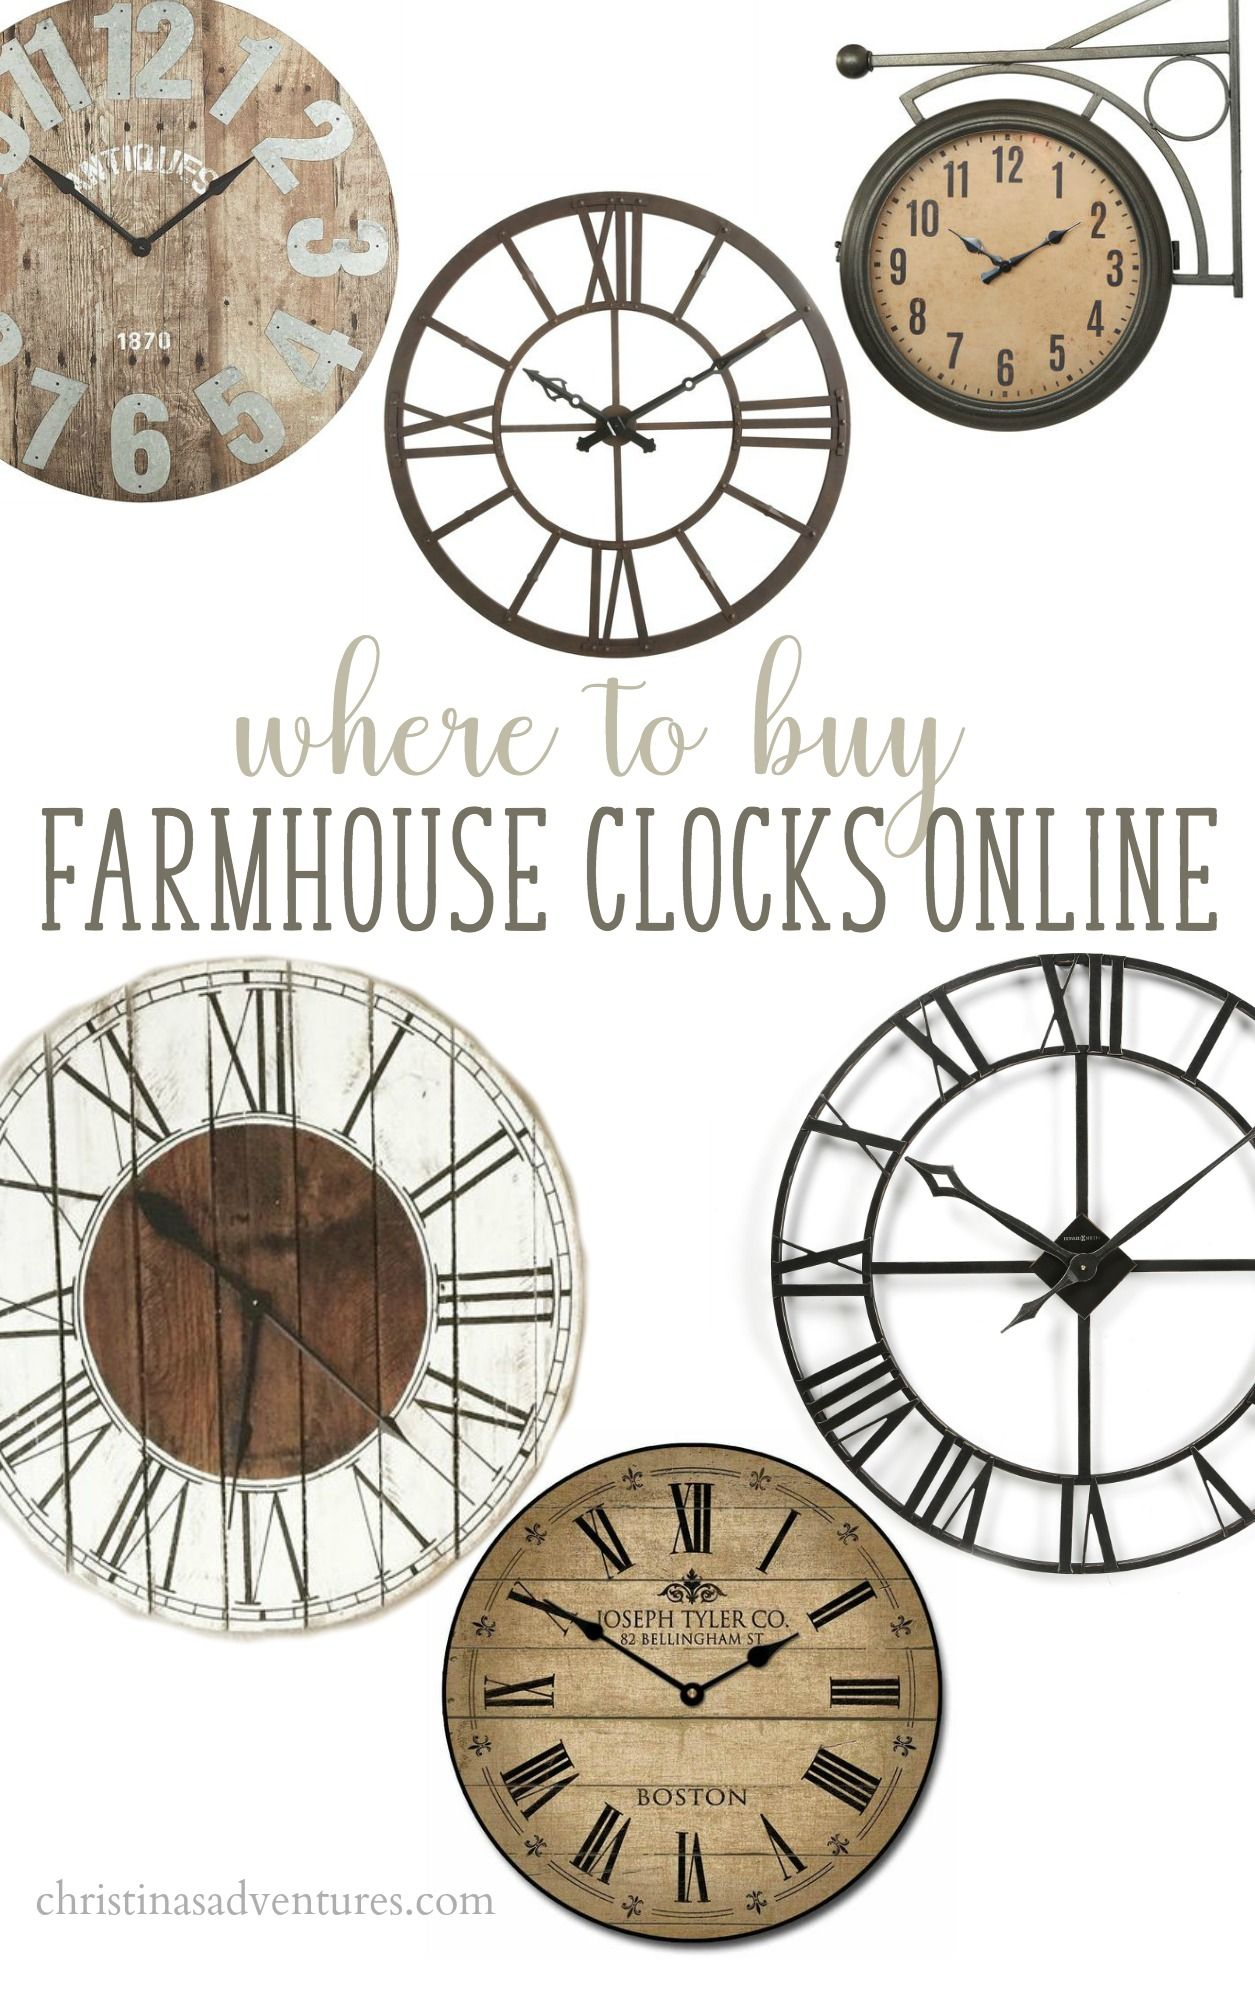 Buy Clock Where To Buy Farmhouse Wall Clocks Shopping Guides For Home